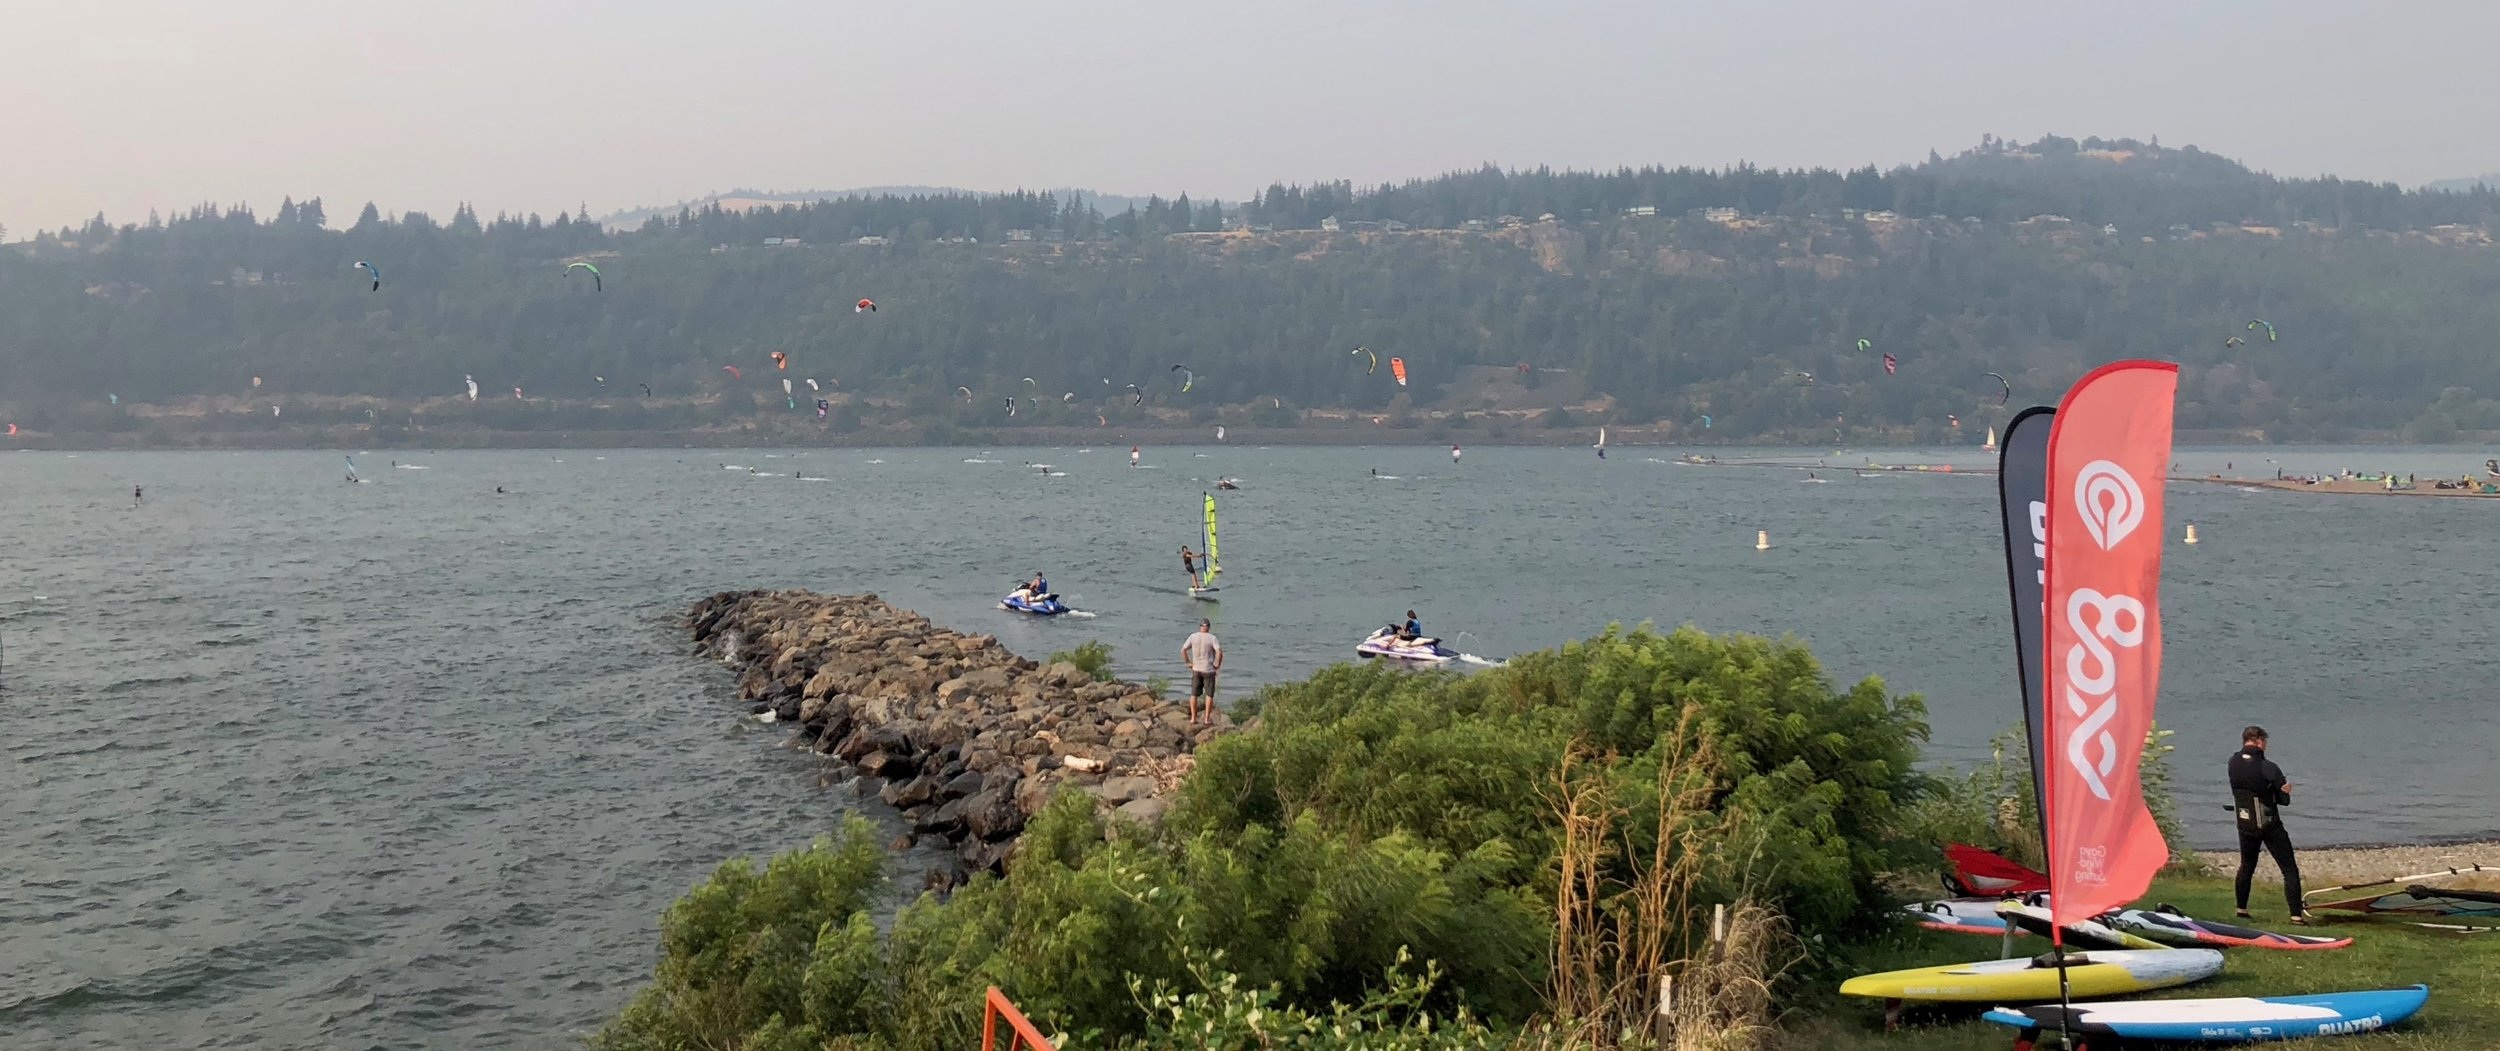 A view out over the event site and all the kite boarders and wind surfers.